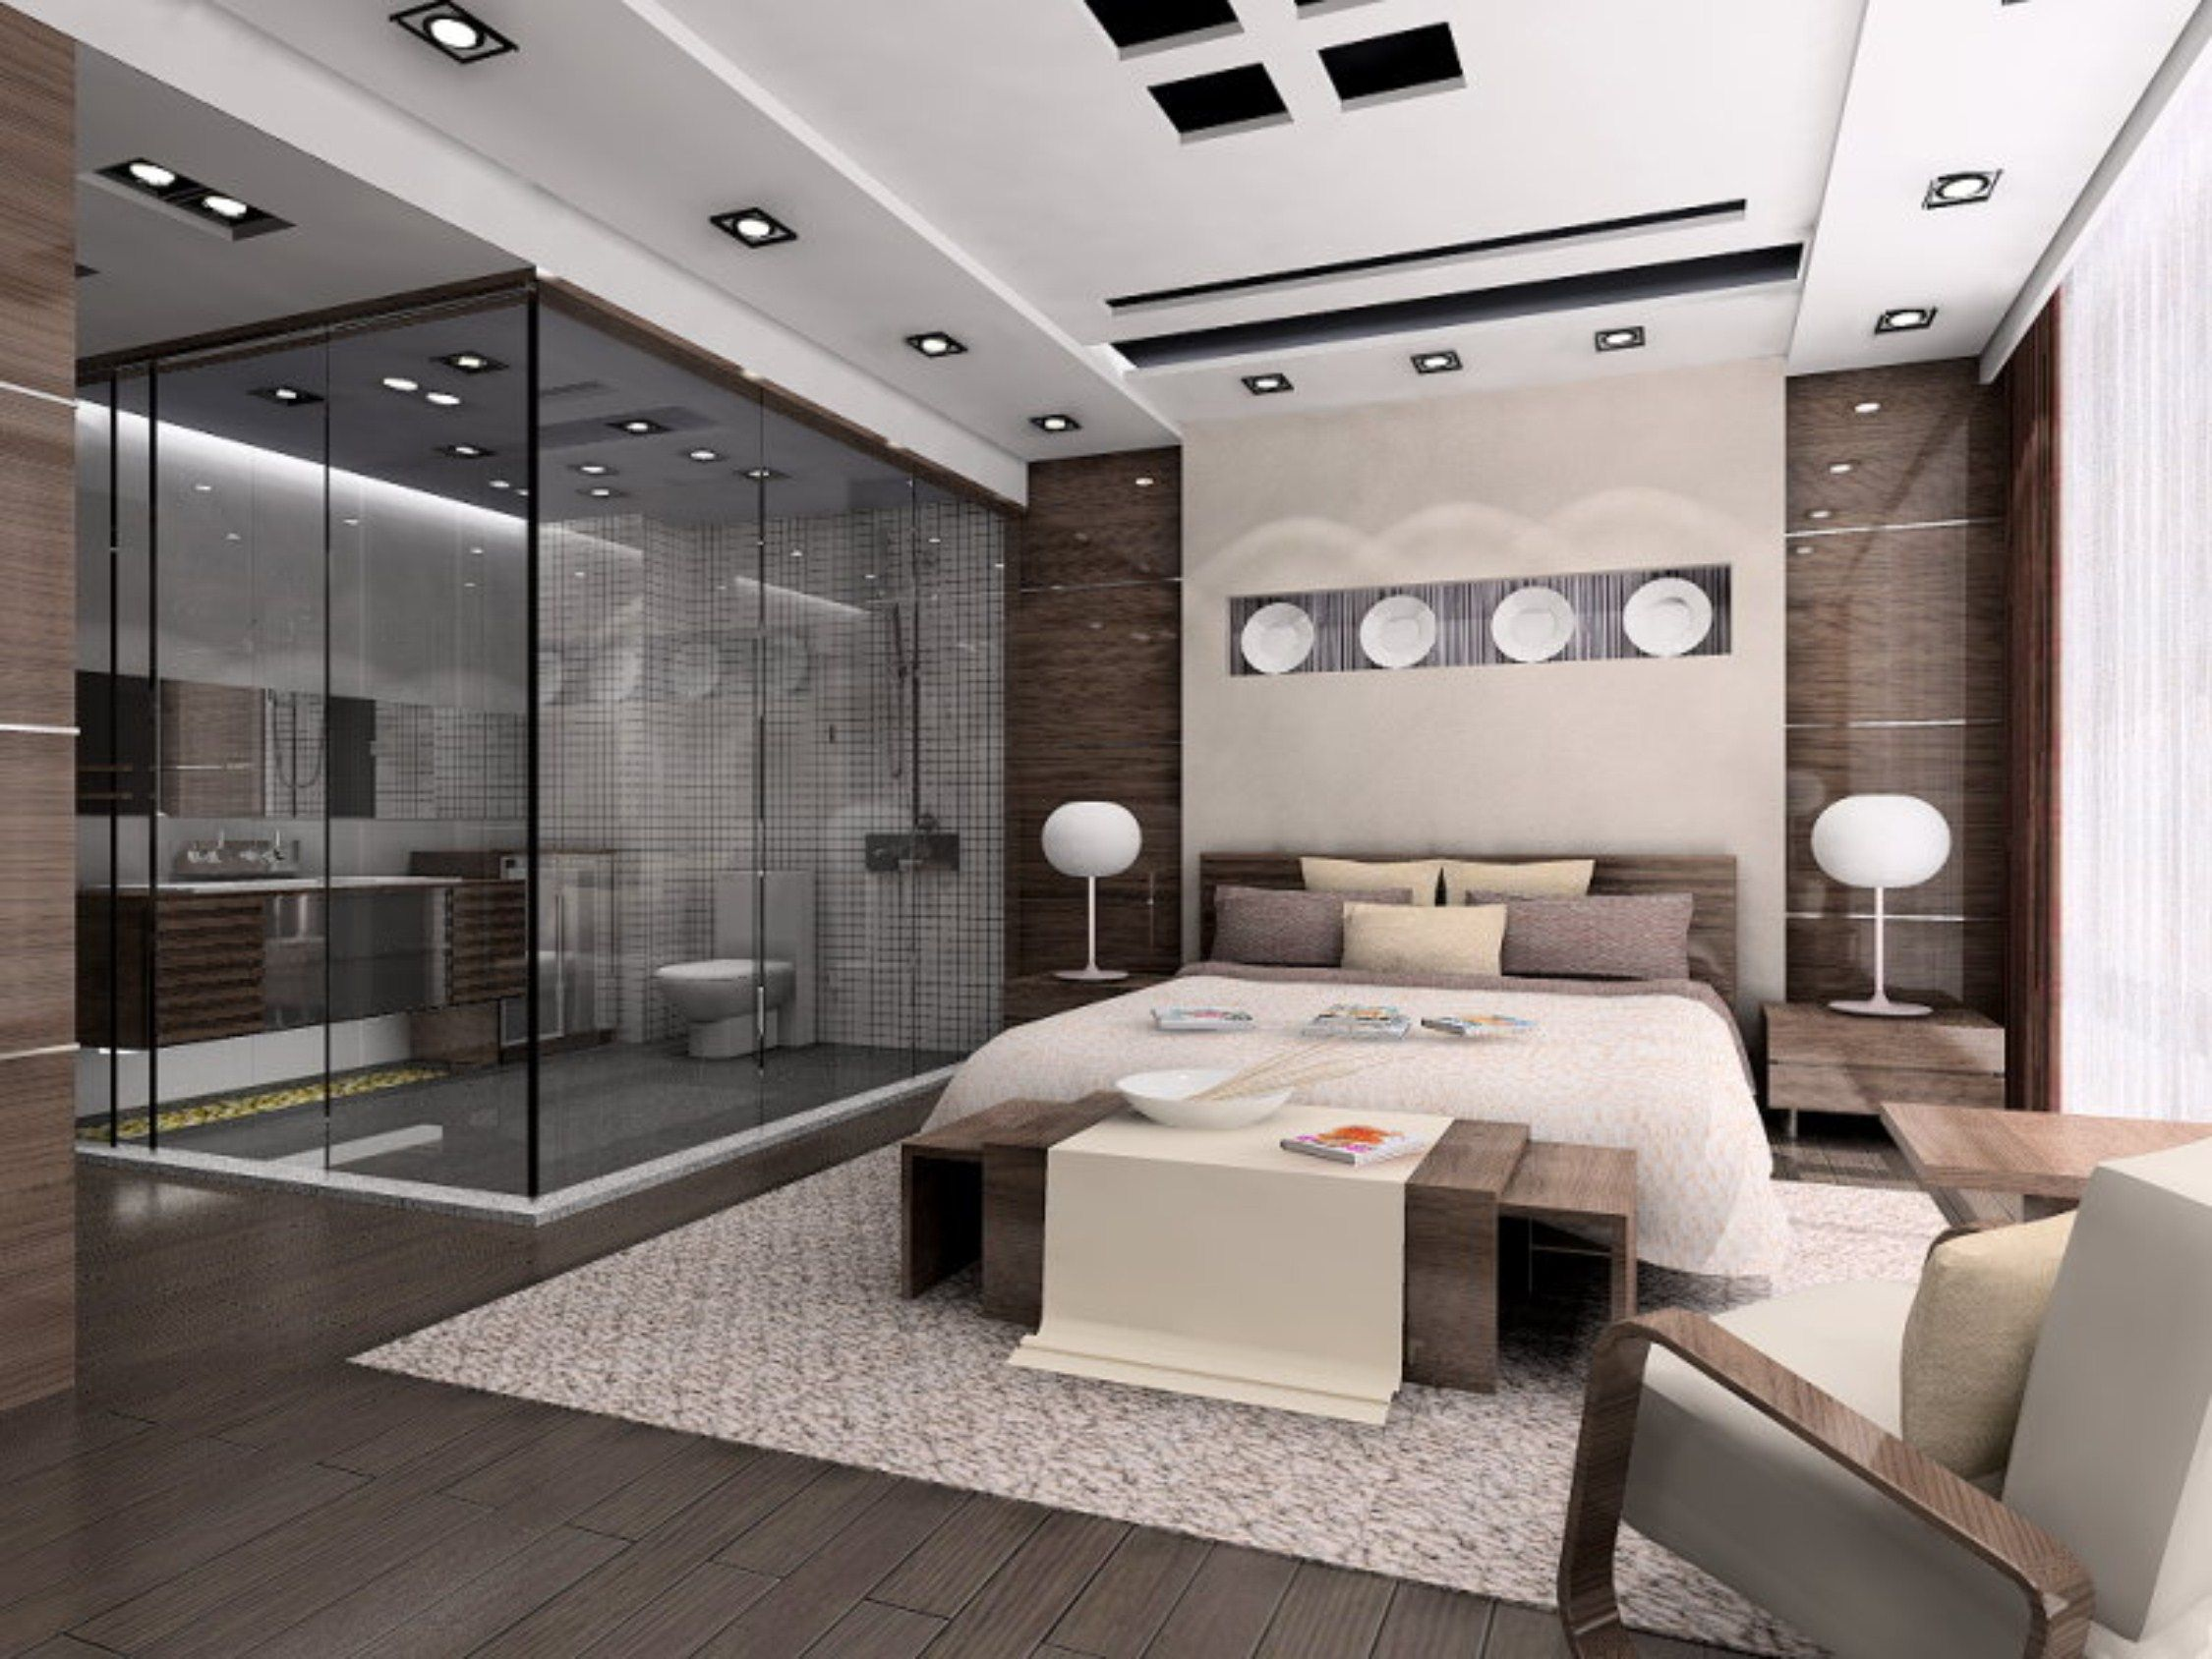 Country House On Behance Contemporary Bedroom Design Contemporary Bathroom Designs Bathroom Furniture Design